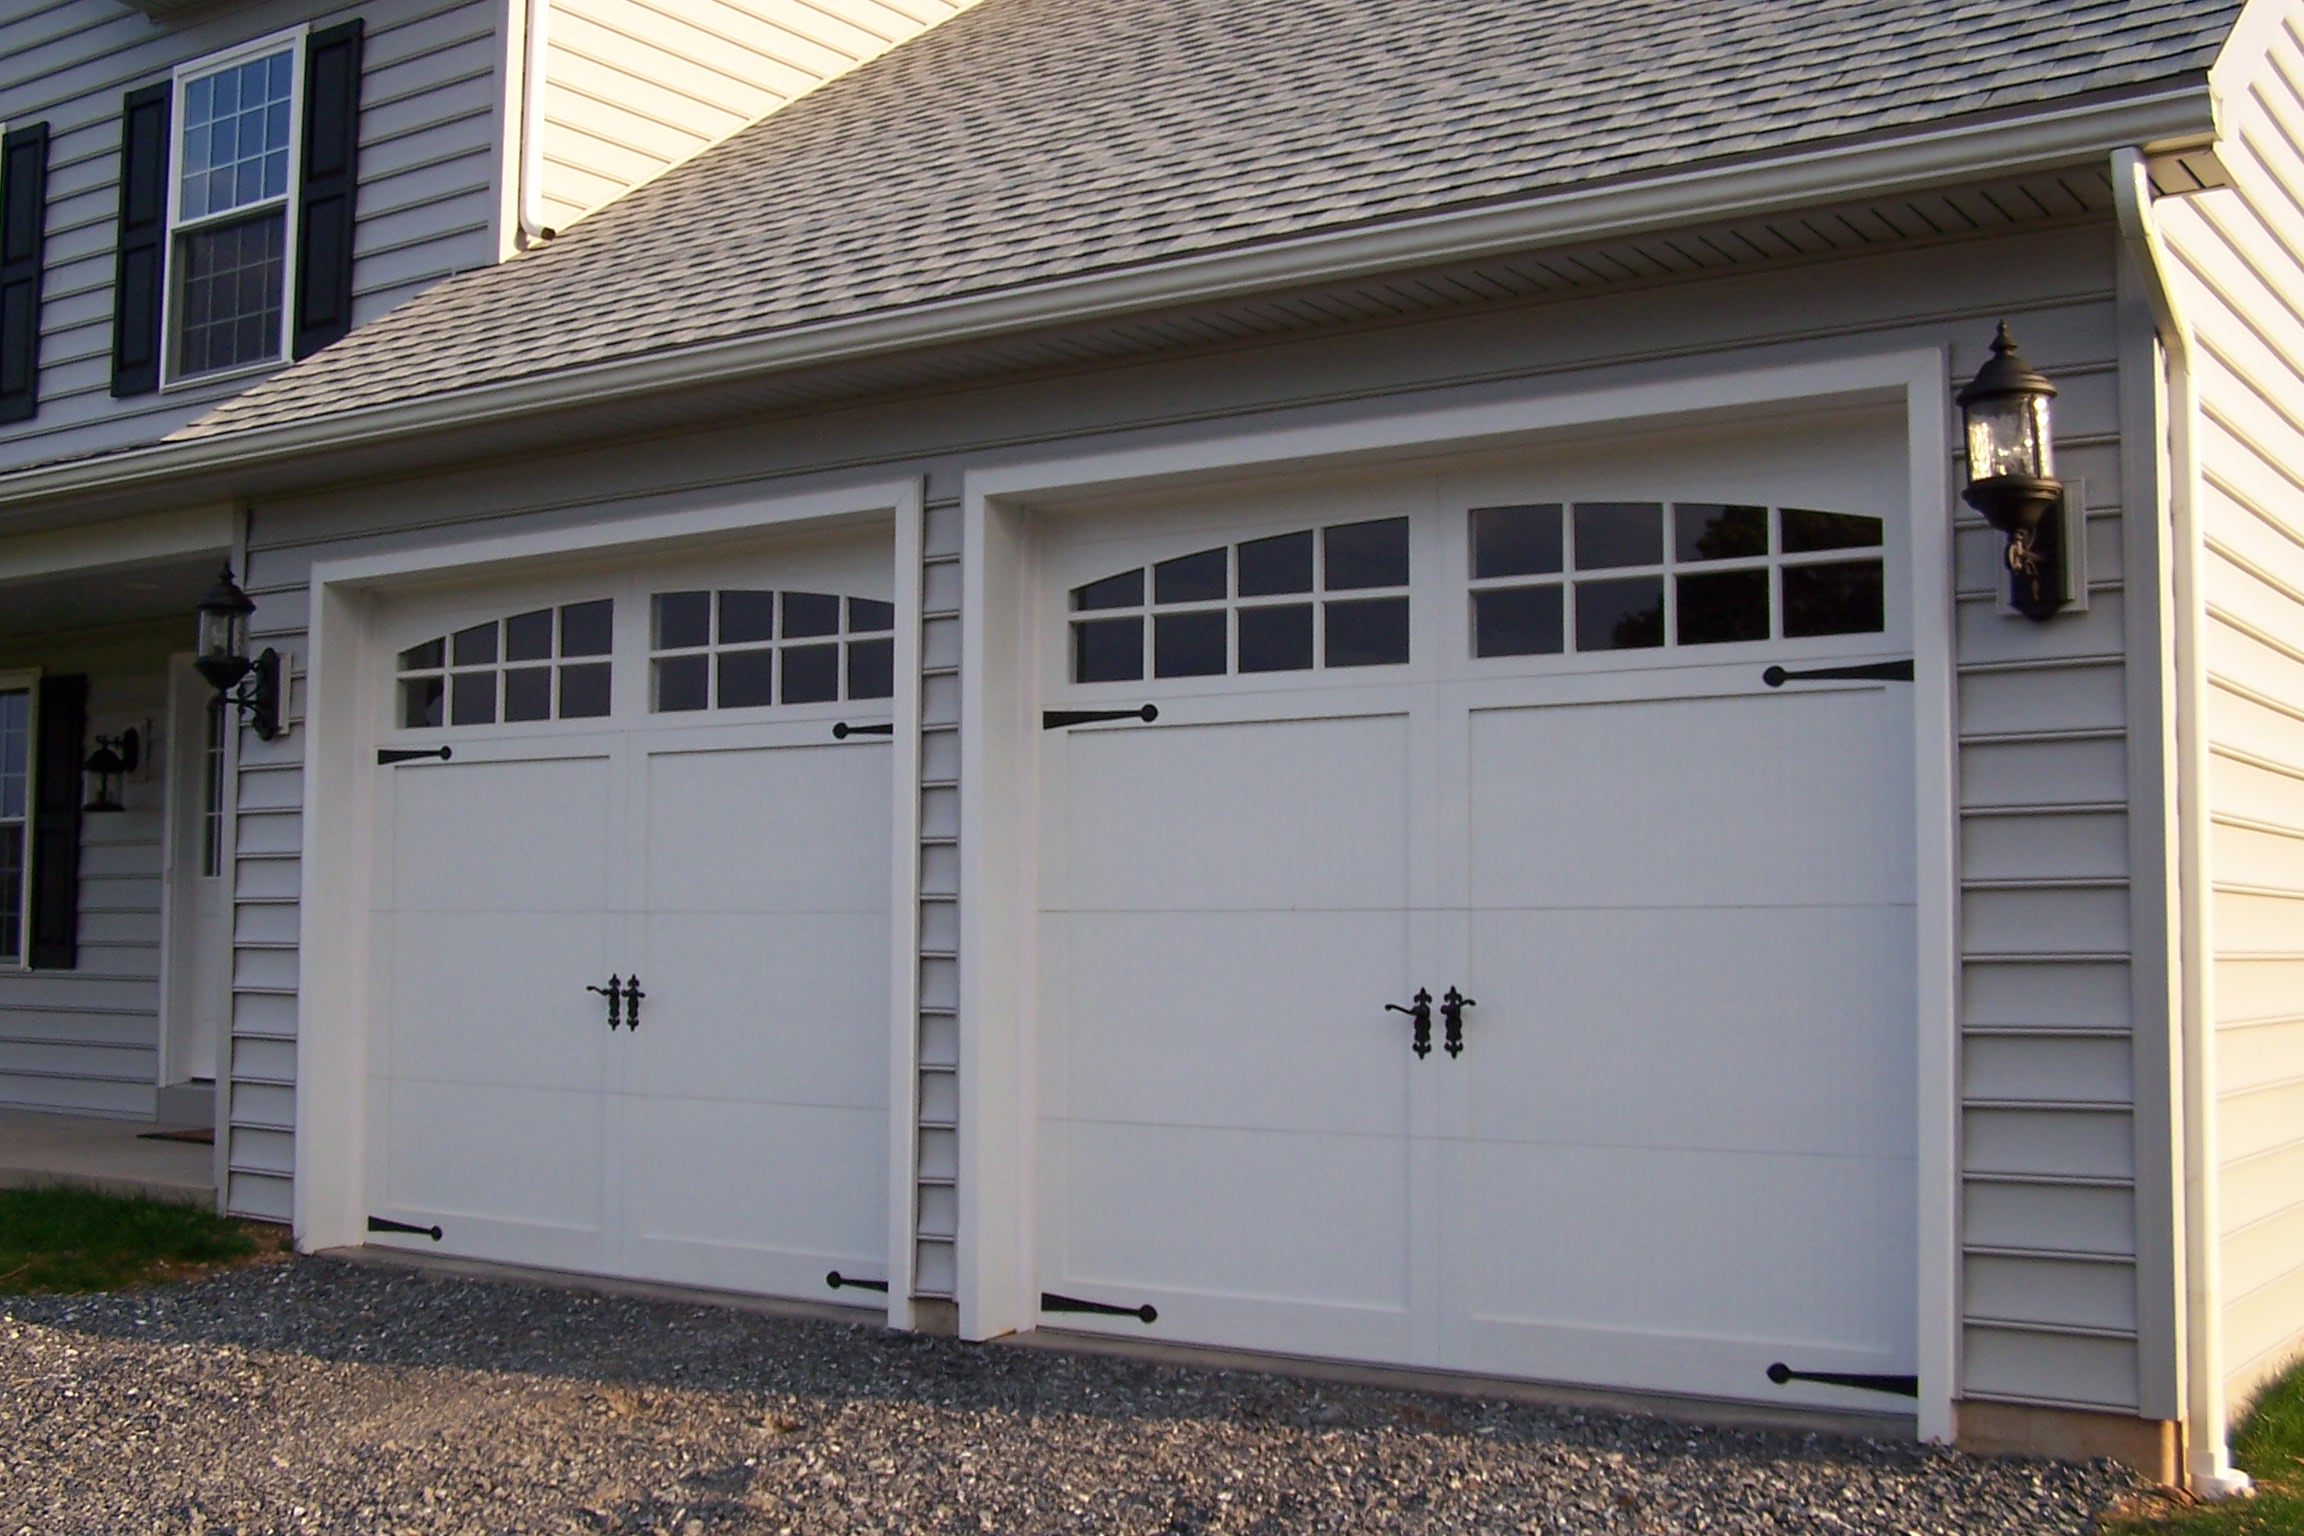 Garage doors sizes available - Sectional Type Steel With Exterior Cladding Overhead Garage Doors In The Style Of Old Carriage House Doors